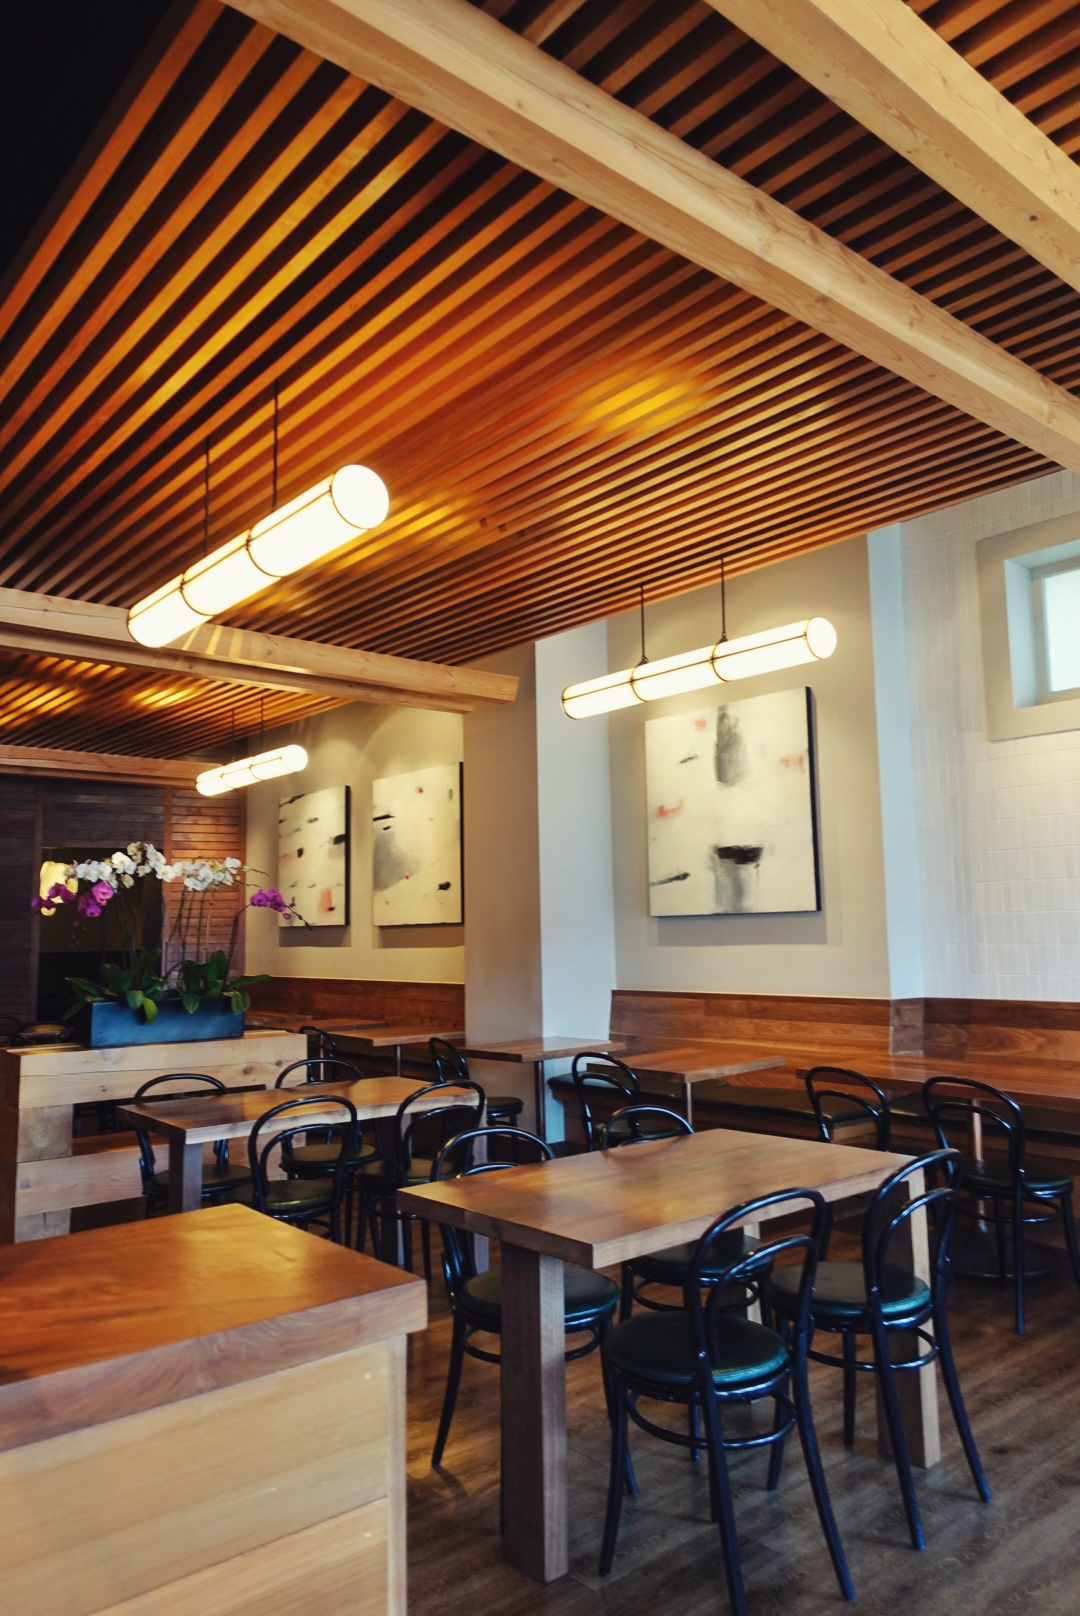 Nomica is an upscale Japanese style bistro located on Market Street, San Francisco.